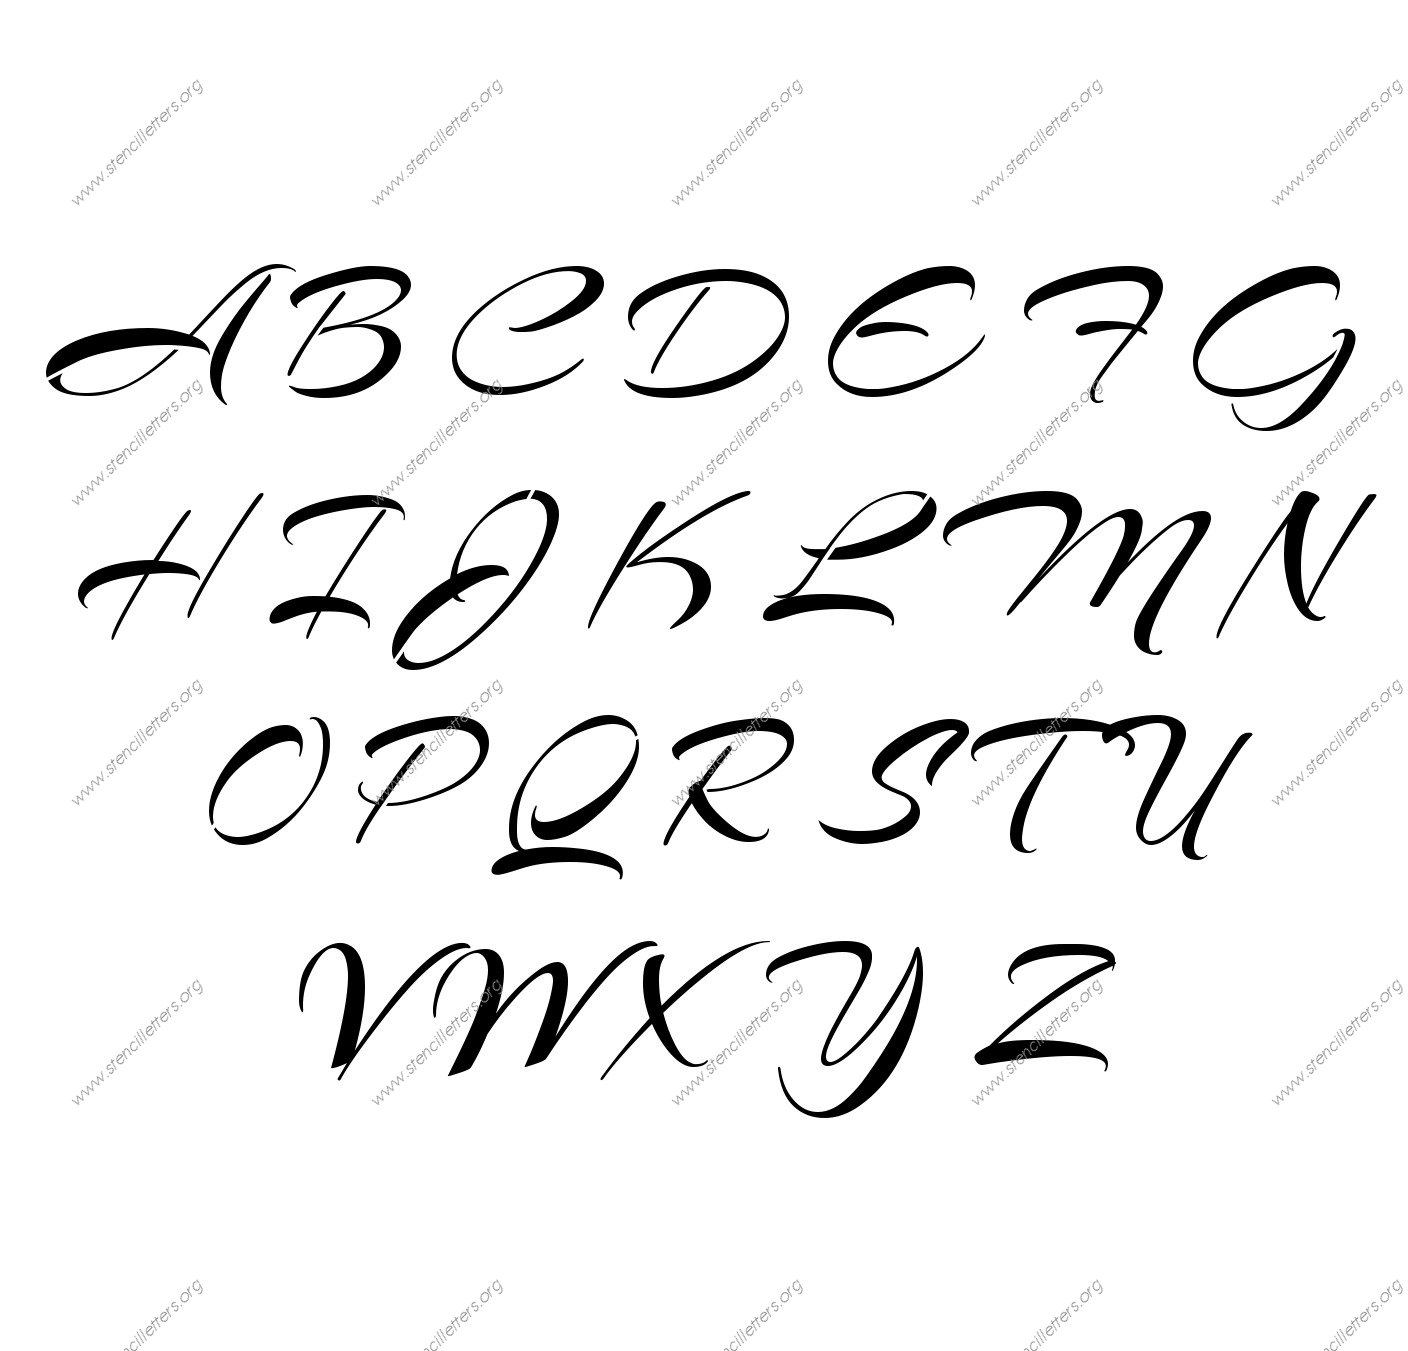 Brushed Cursive Uppercase Amp Lowercase Letter Stencils A Z 1 4 To 12 Inch Sizes